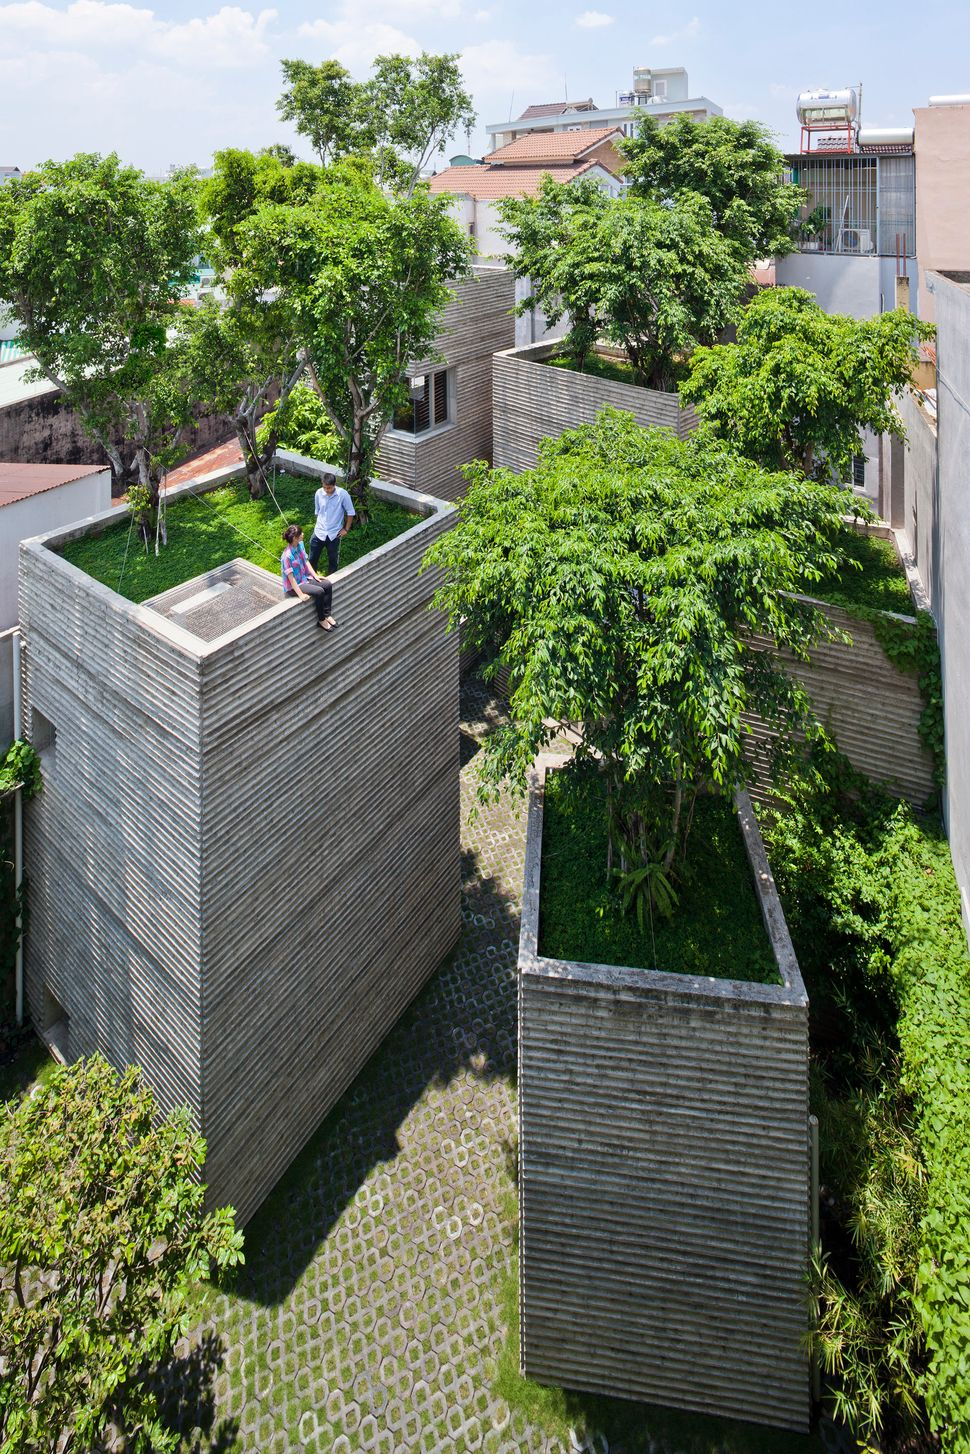 House for Trees by Vo Trong Nghia Architects. In Ho Chi Minh City, only 0.25% of the entire city is covered with greenery. So